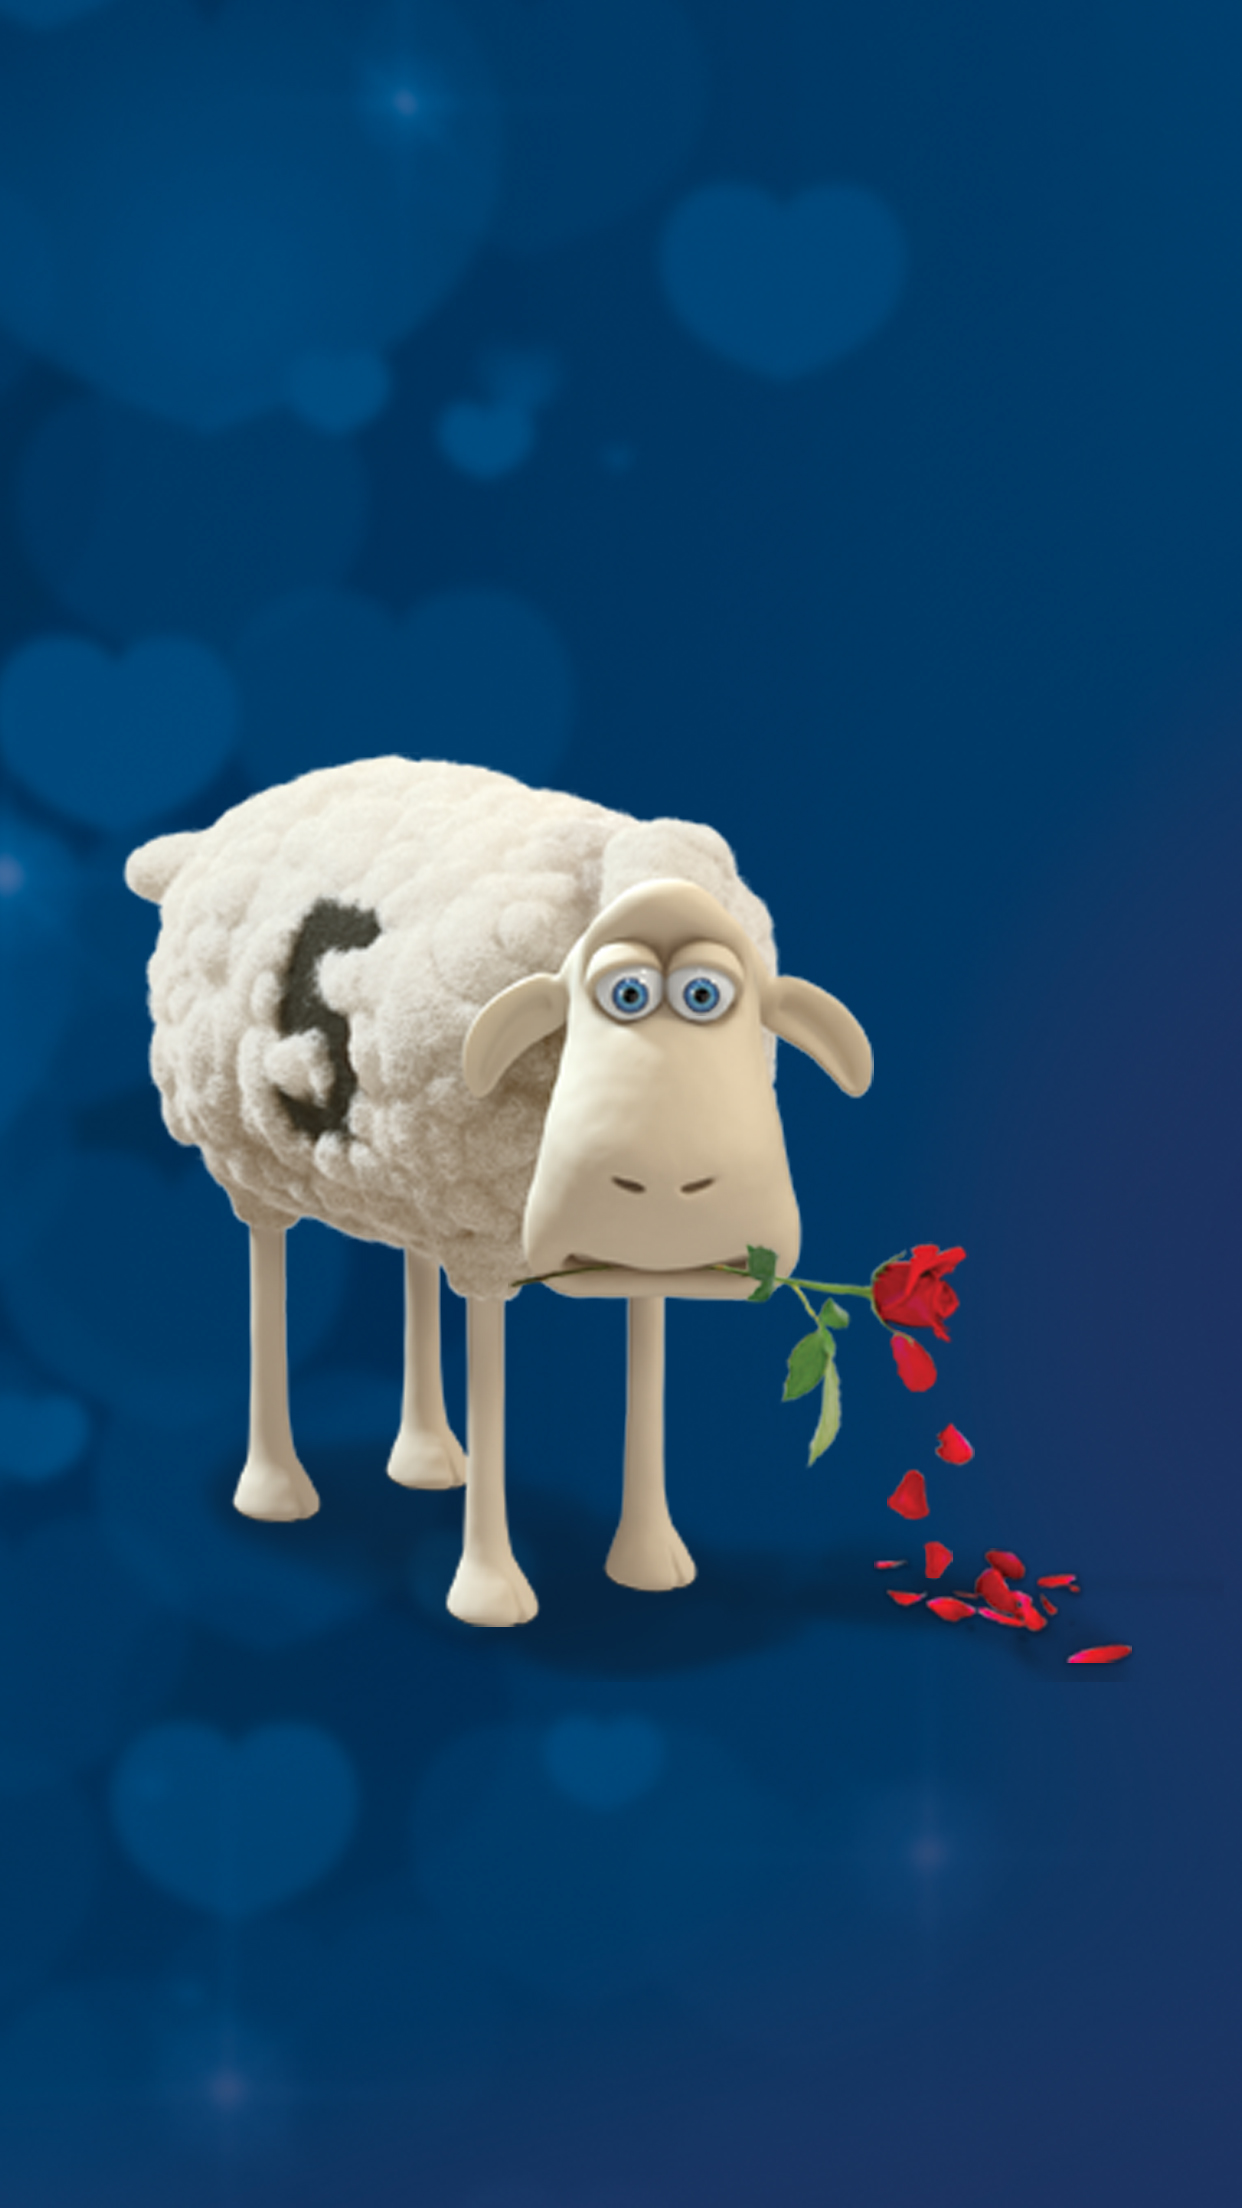 Serta Counting Sheep mobile wallpaper 1